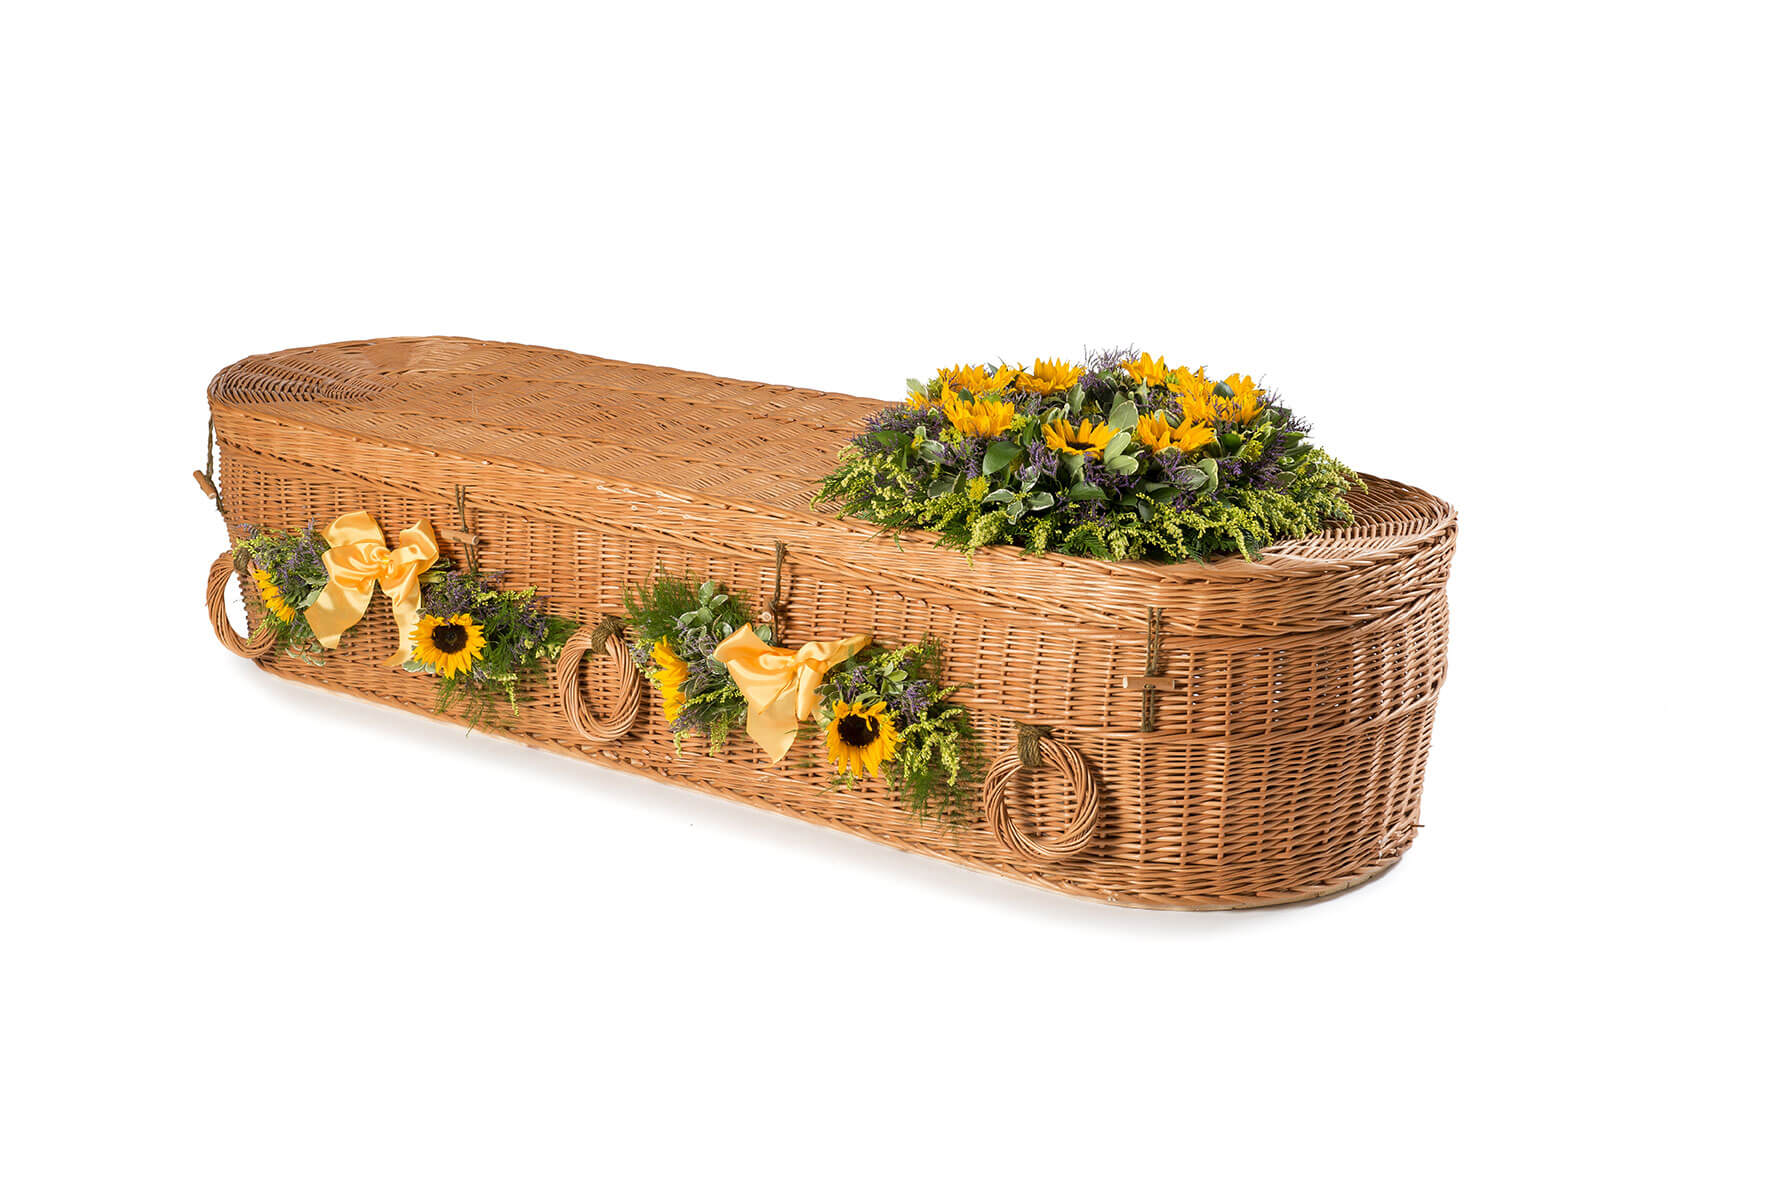 Wicker rounded coffin with flowers on